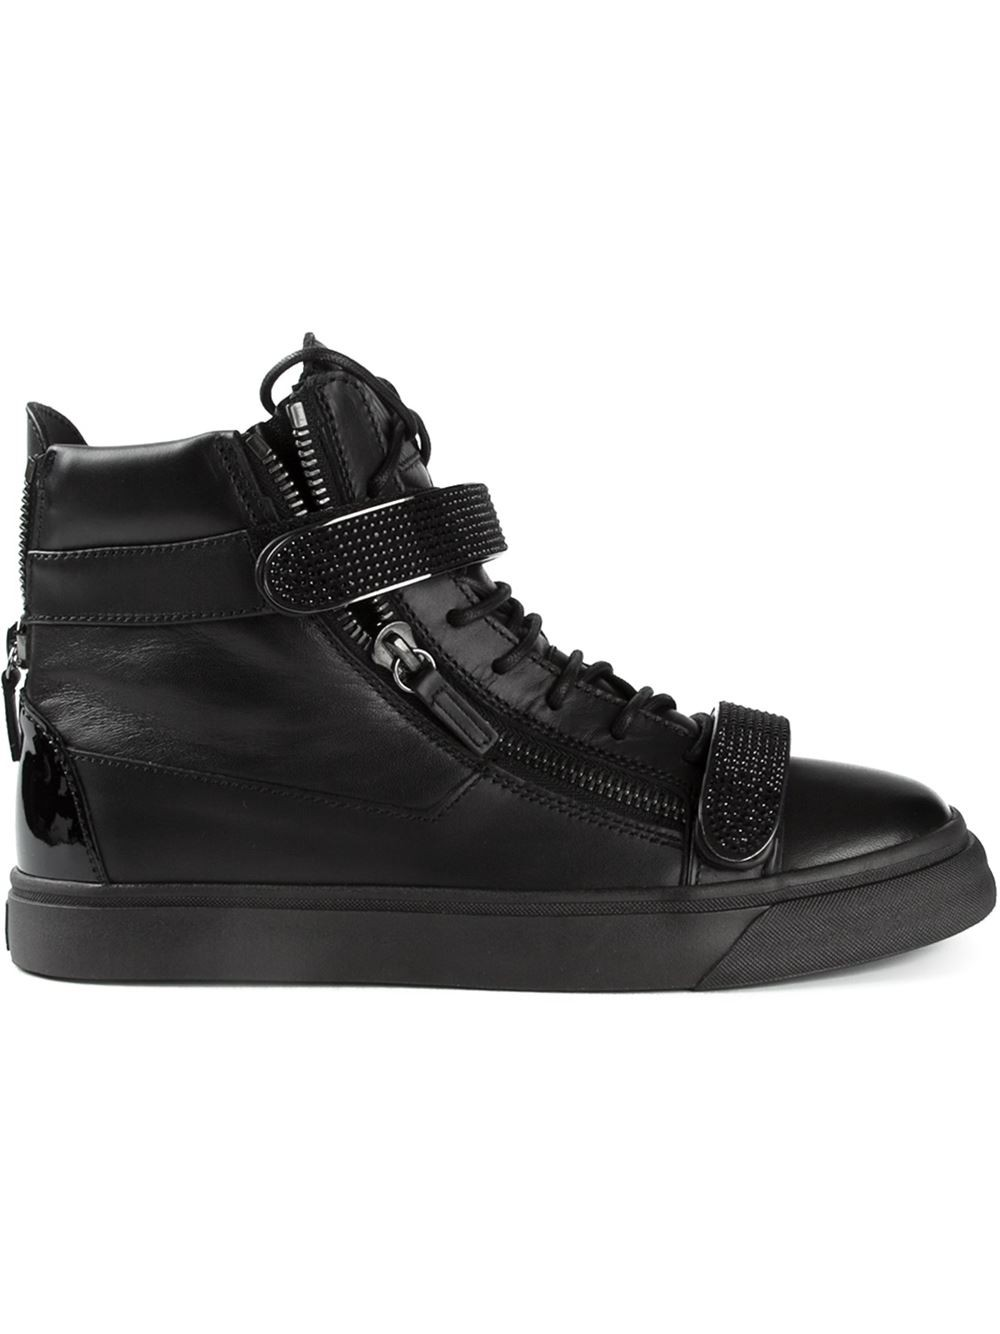 High-top Leather Shoes Zipper Design Lace Up Sneakers Top Quality Fashion Men Shoe